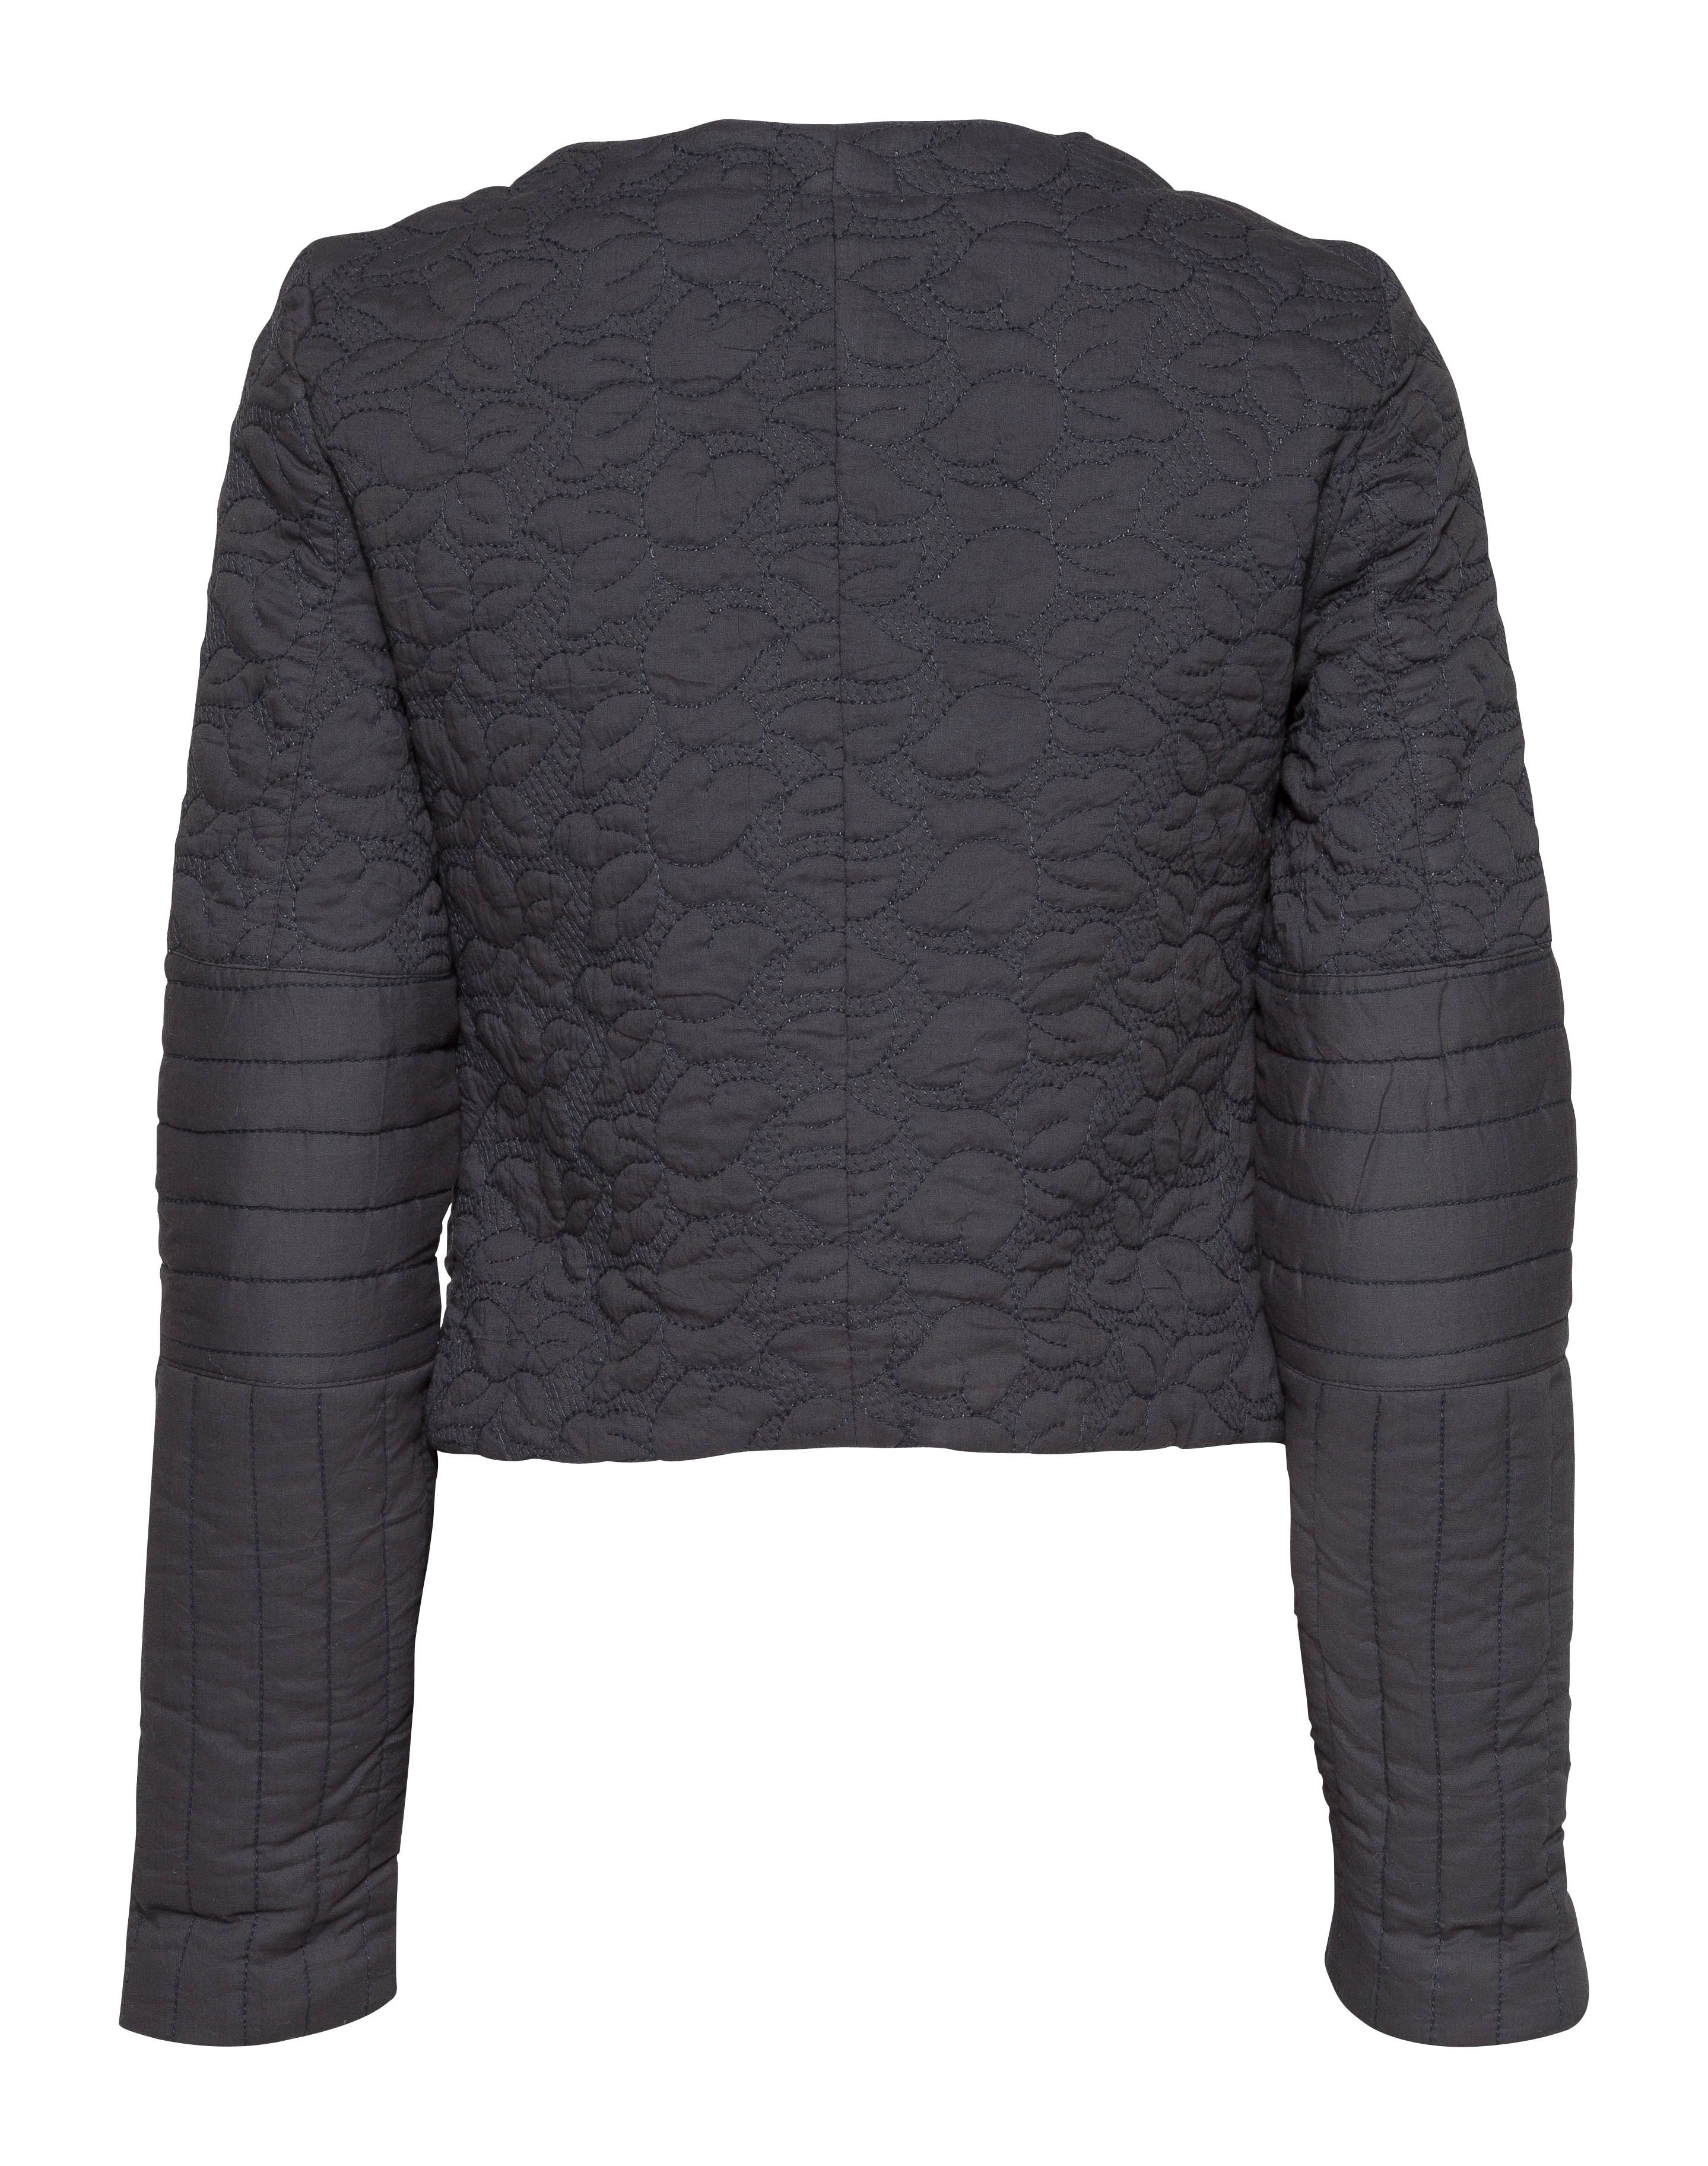 Kuluk quilt jacket long sleeve